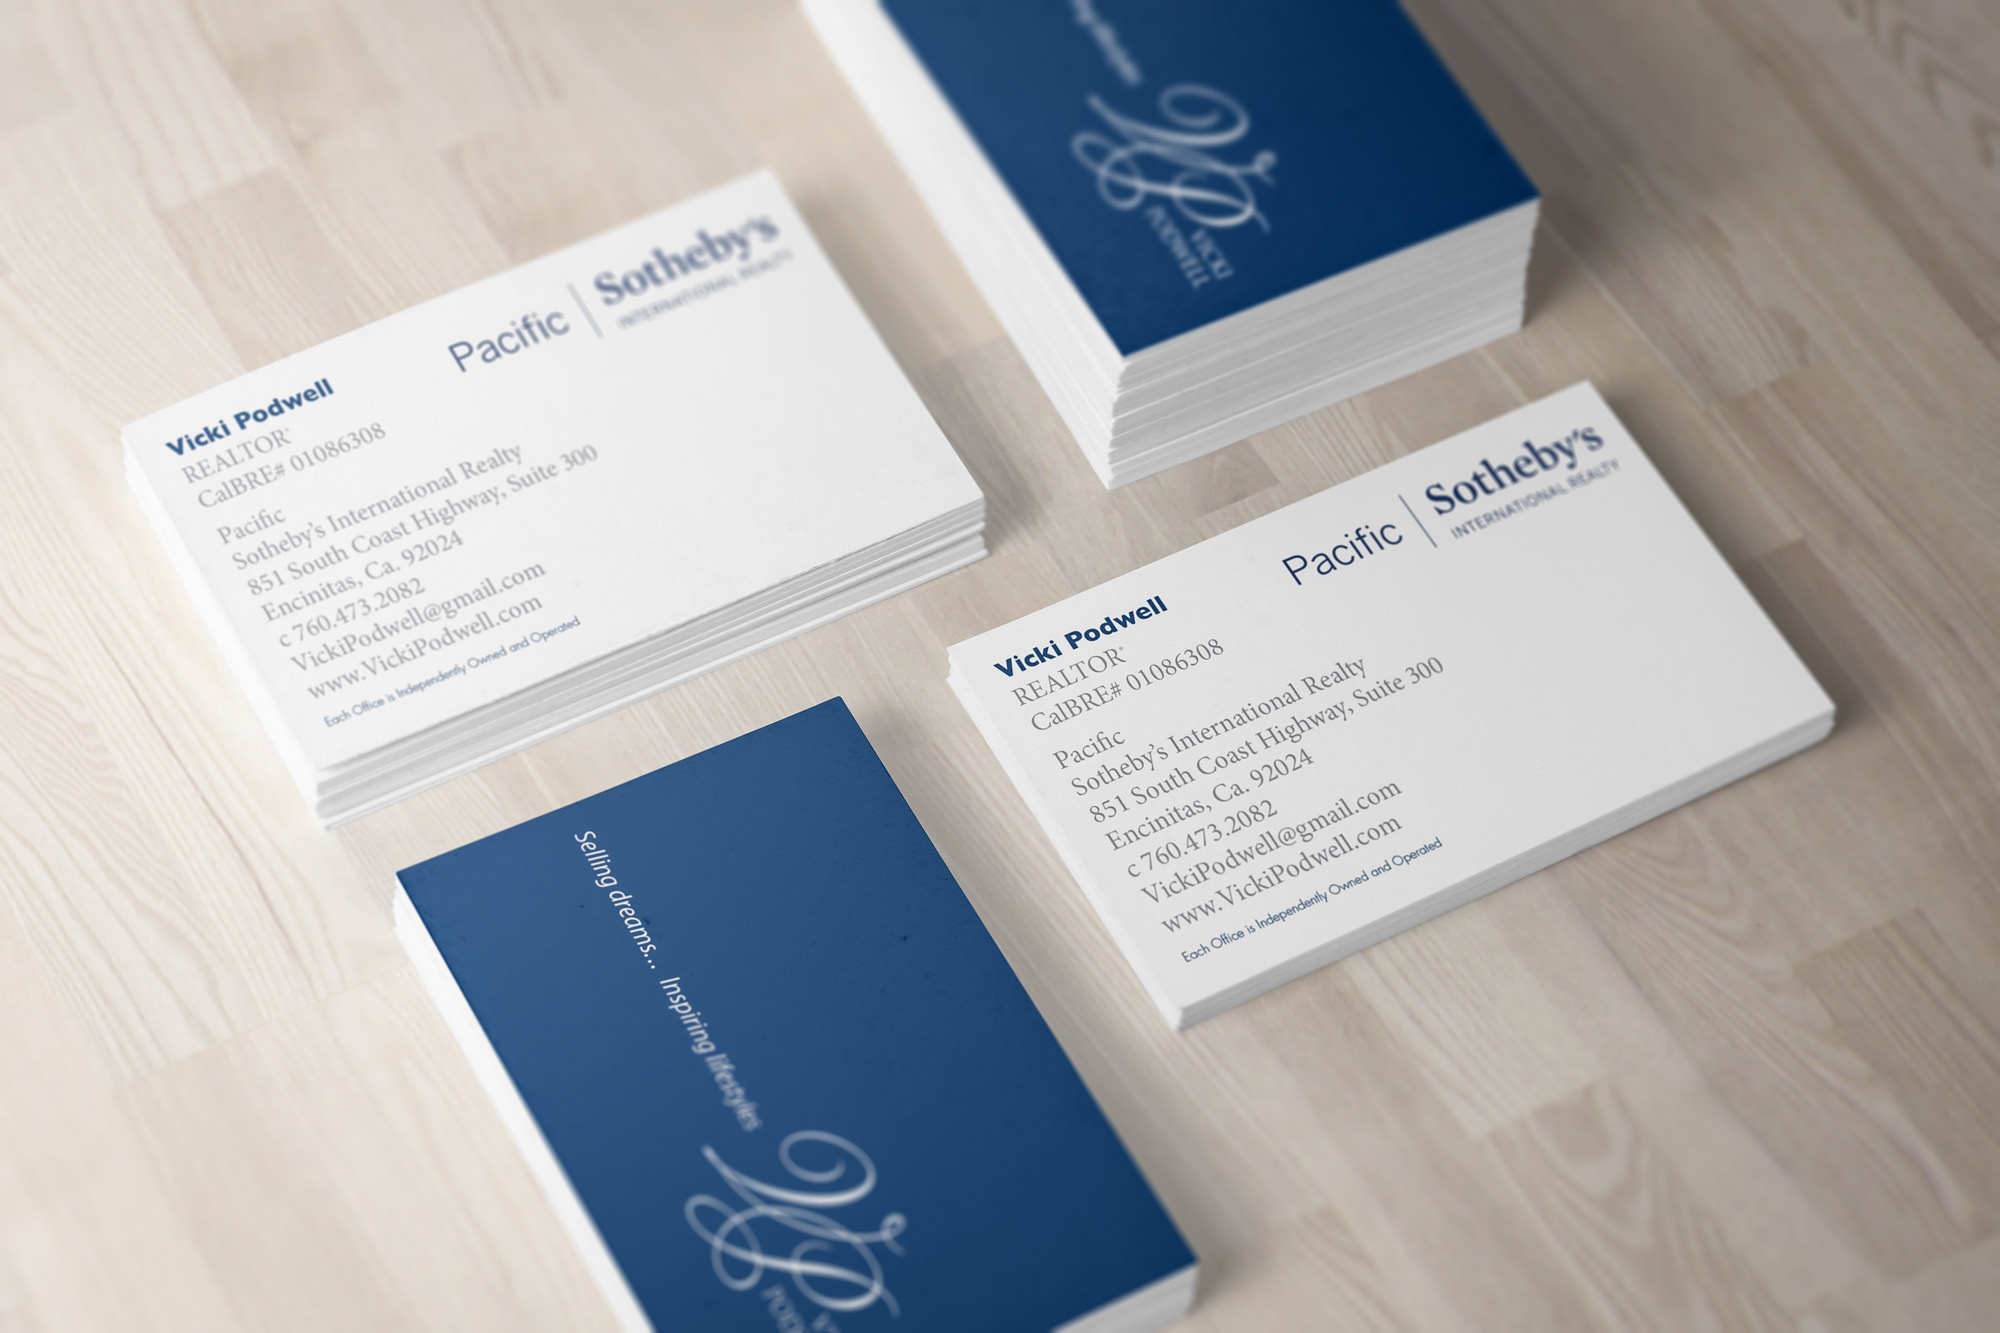 BusinessCards_PacificSothebys